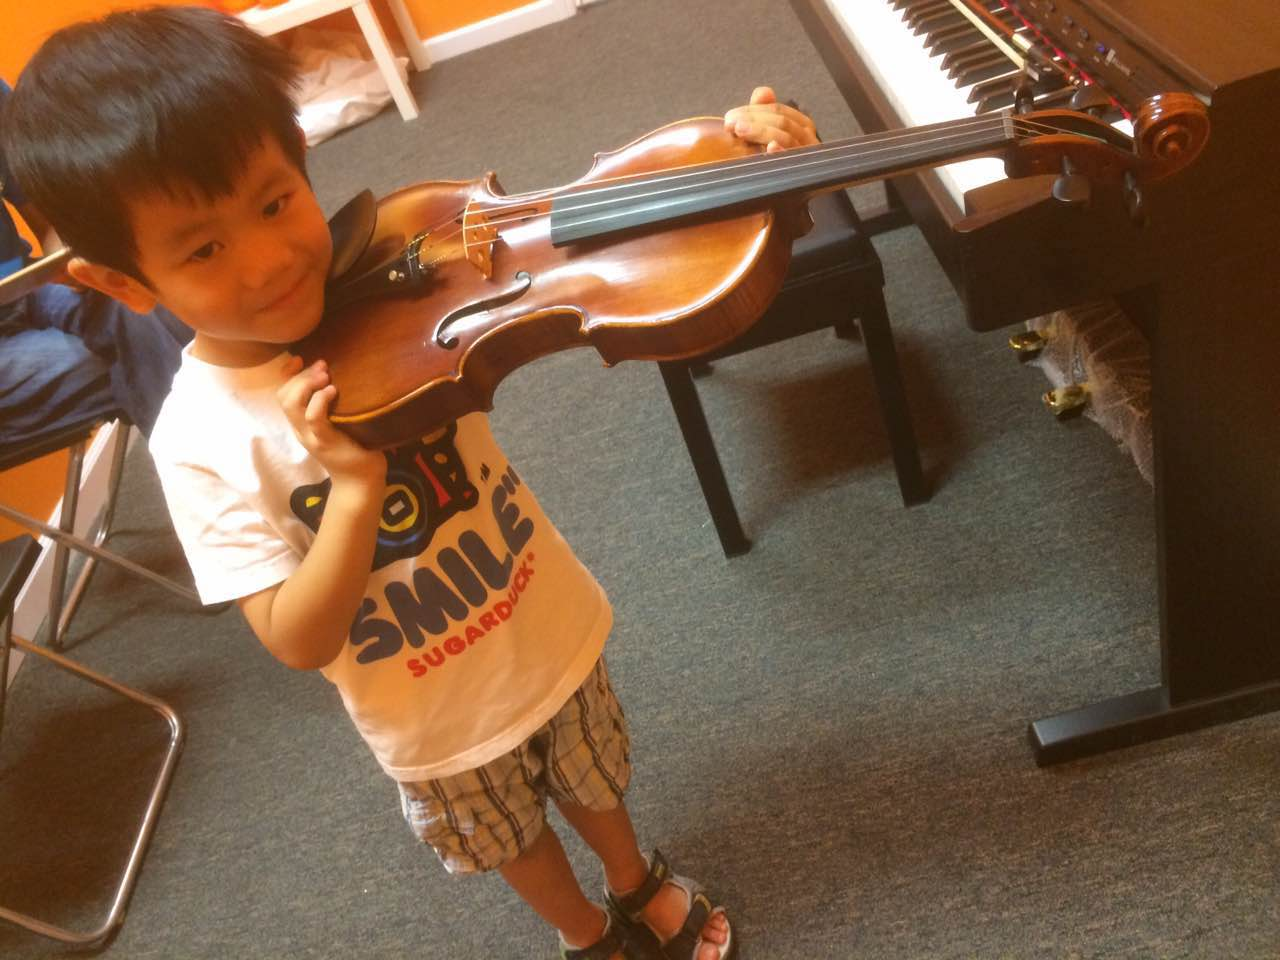 Our young violin student